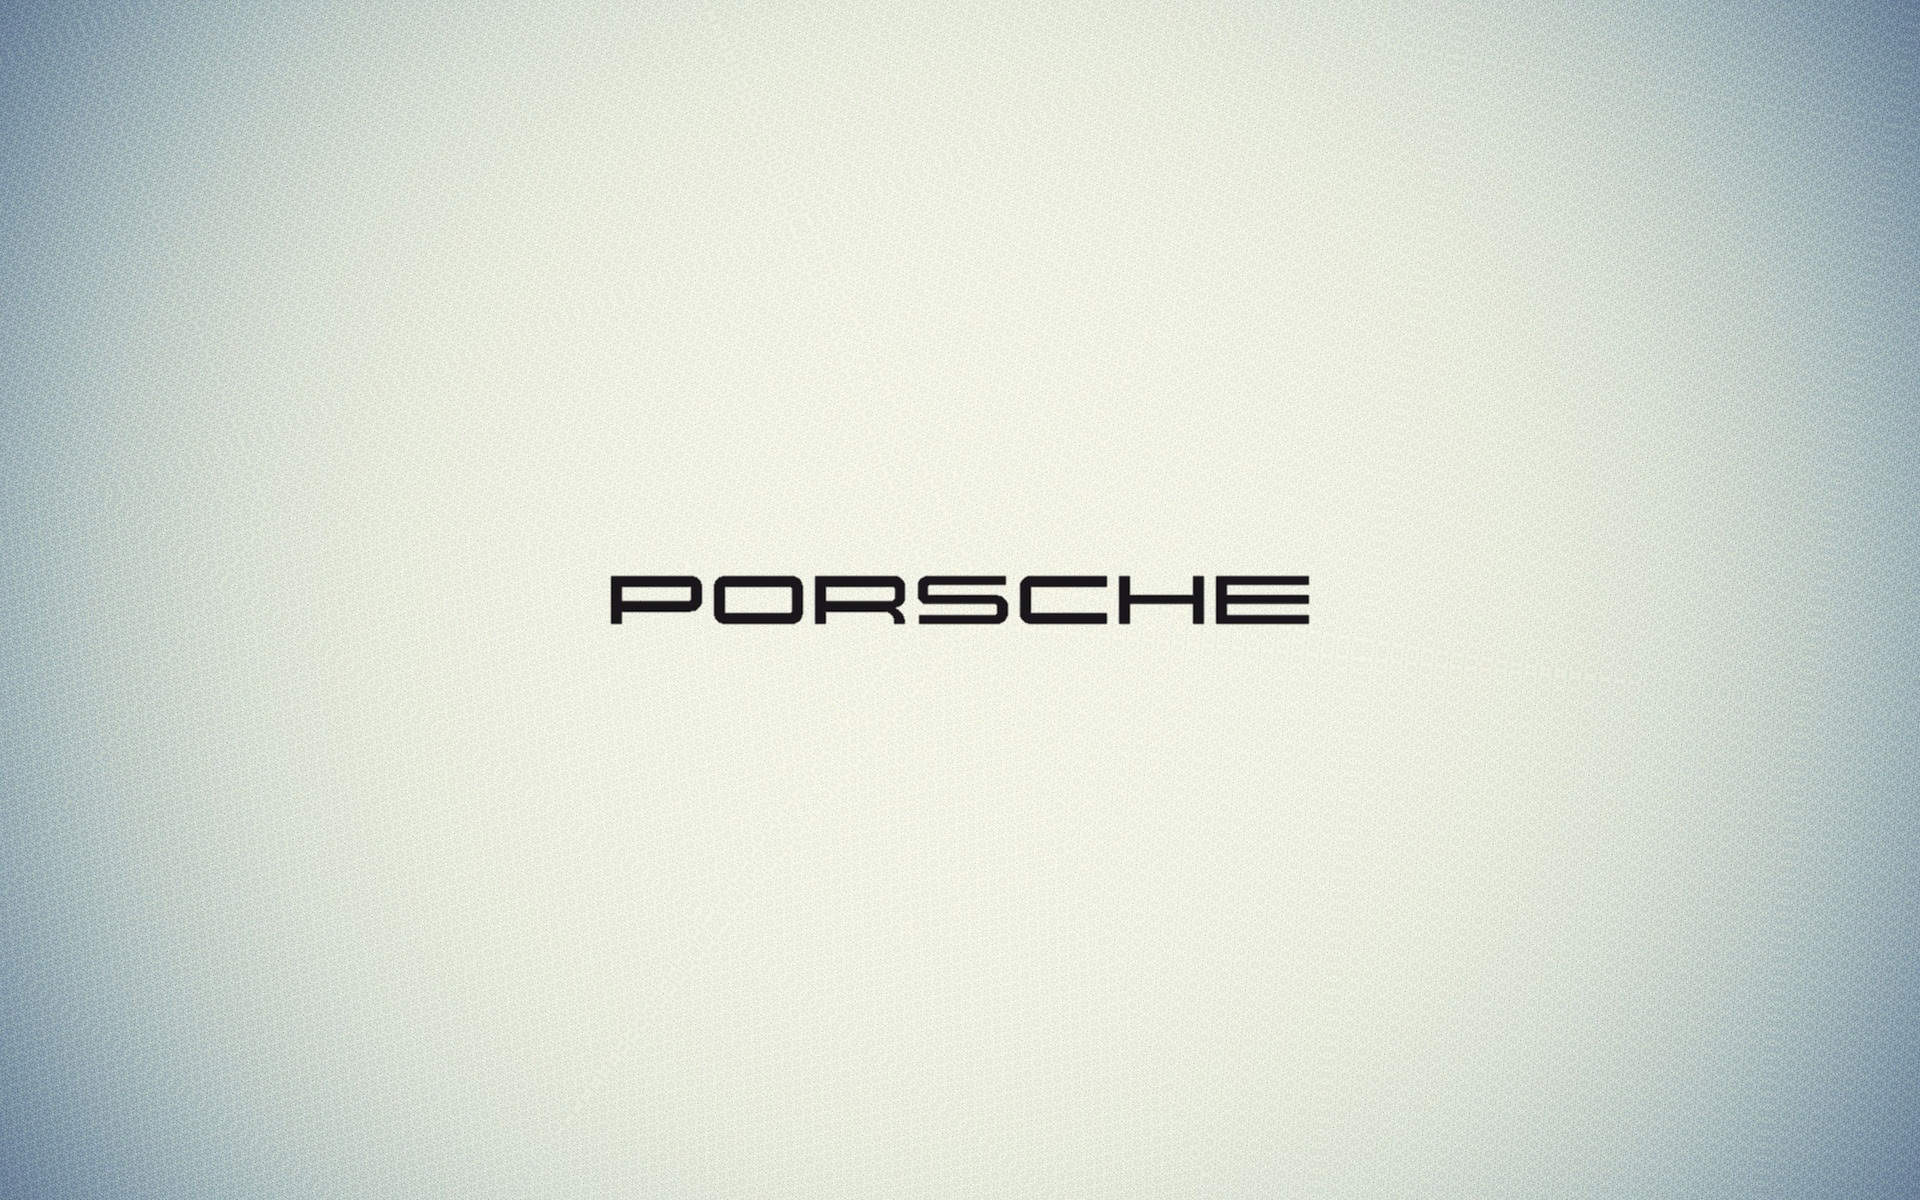 porsche logo silver widescreen desktop wallpaper 932